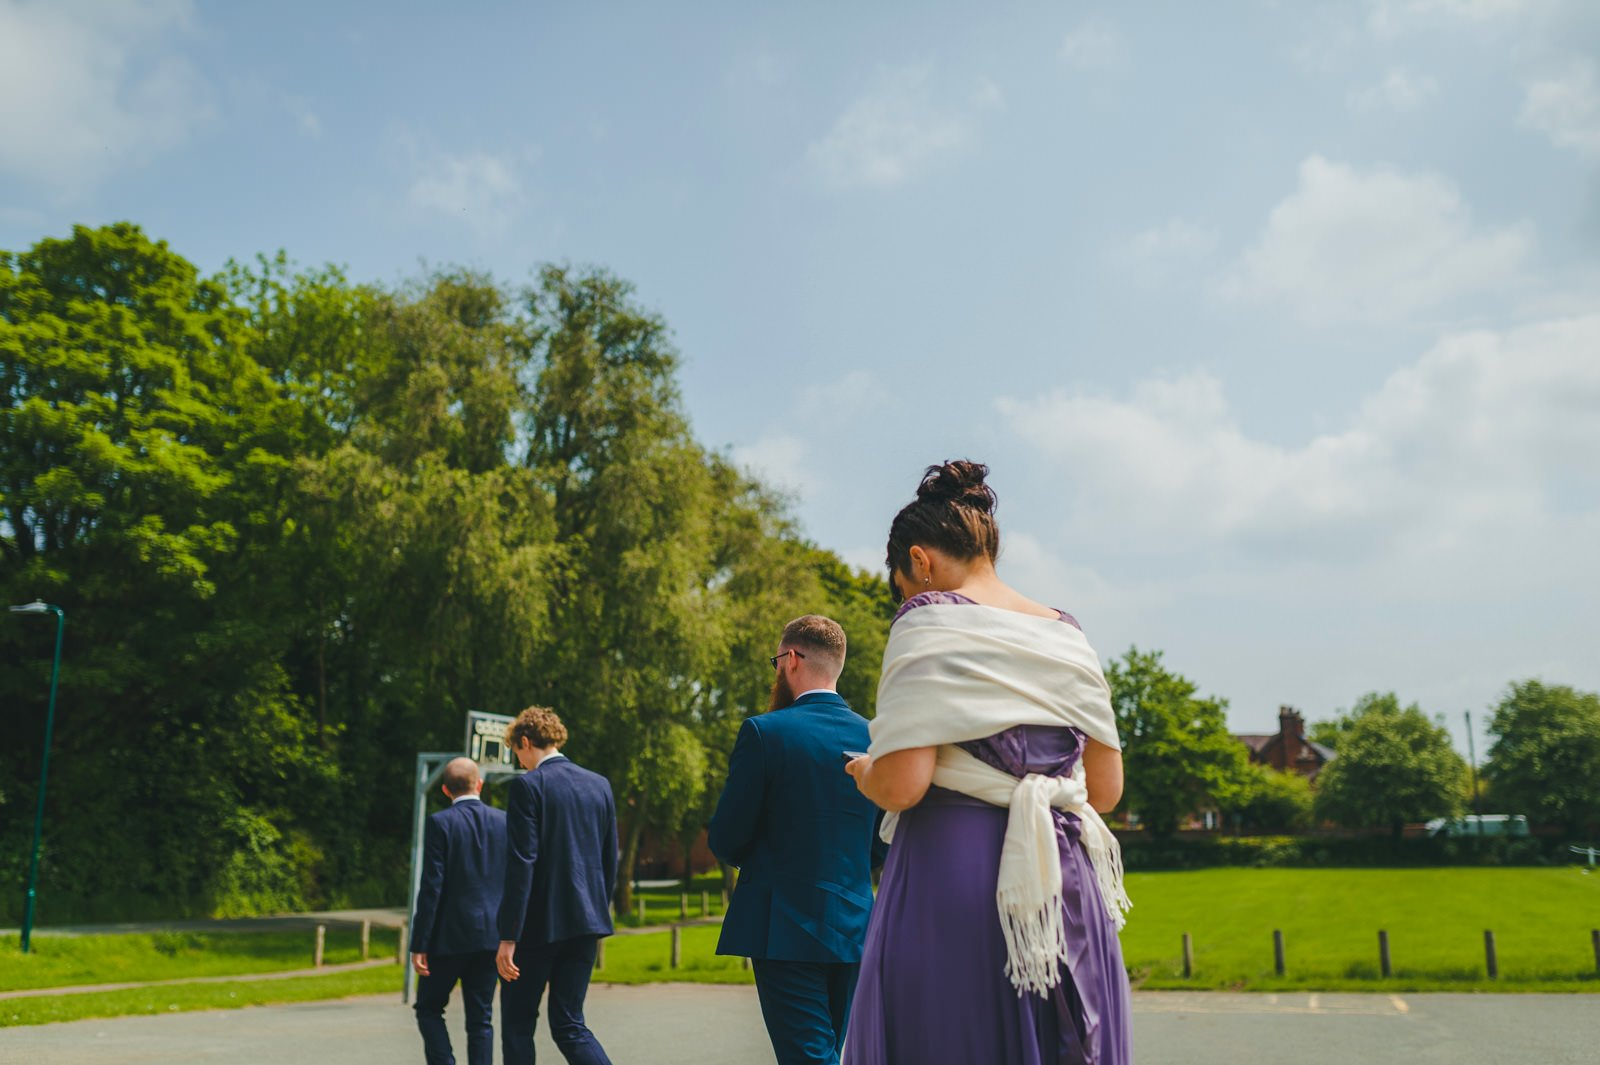 millers of netley wedding 11 - Millers Of Netley wedding, Dorrington, Shrewsbury | Emma + Ben